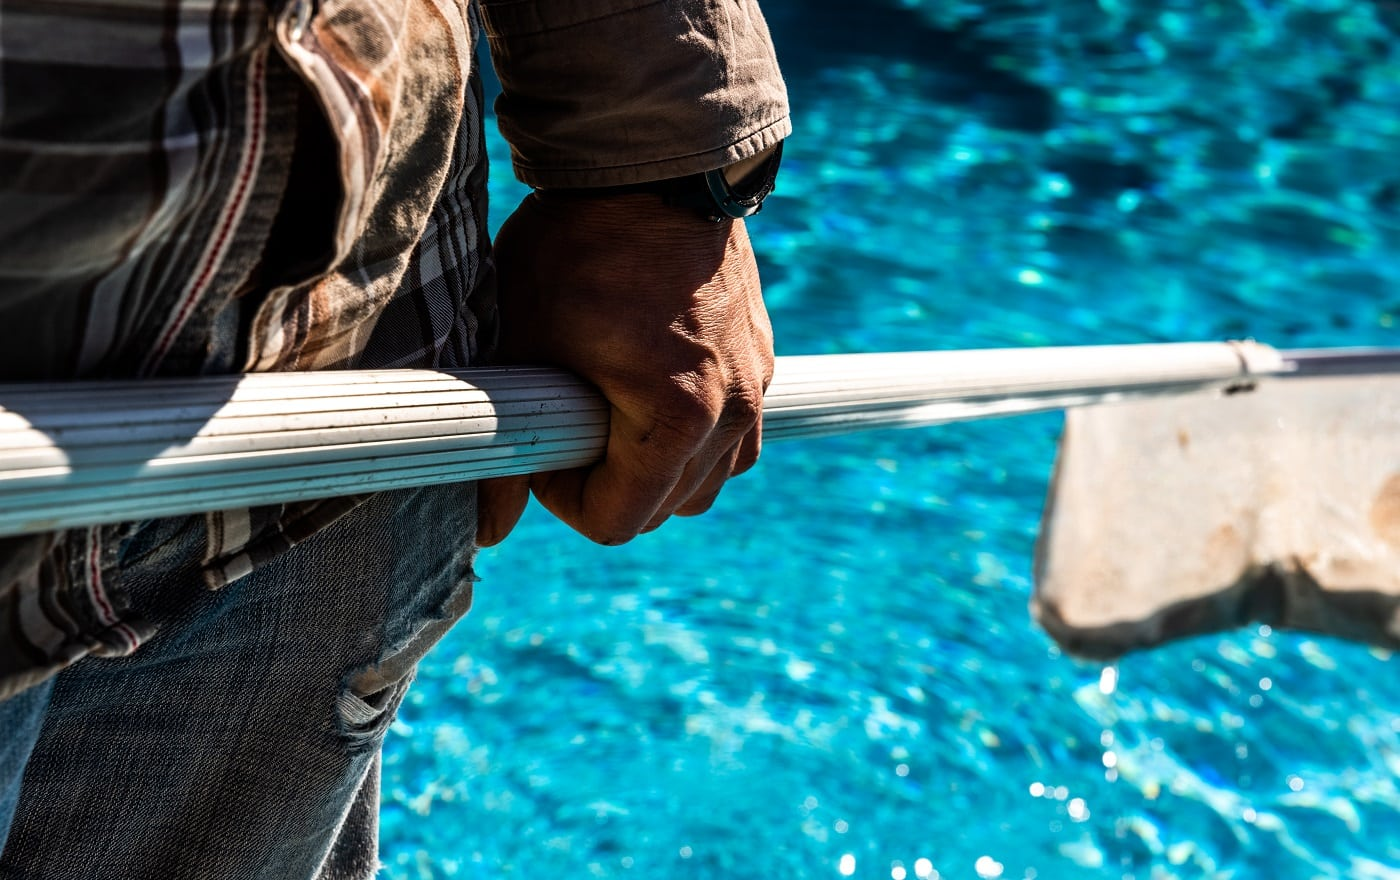 Maintenance man using a pool net leaf skimmer rake in summer to leave ready for bathing his pool.